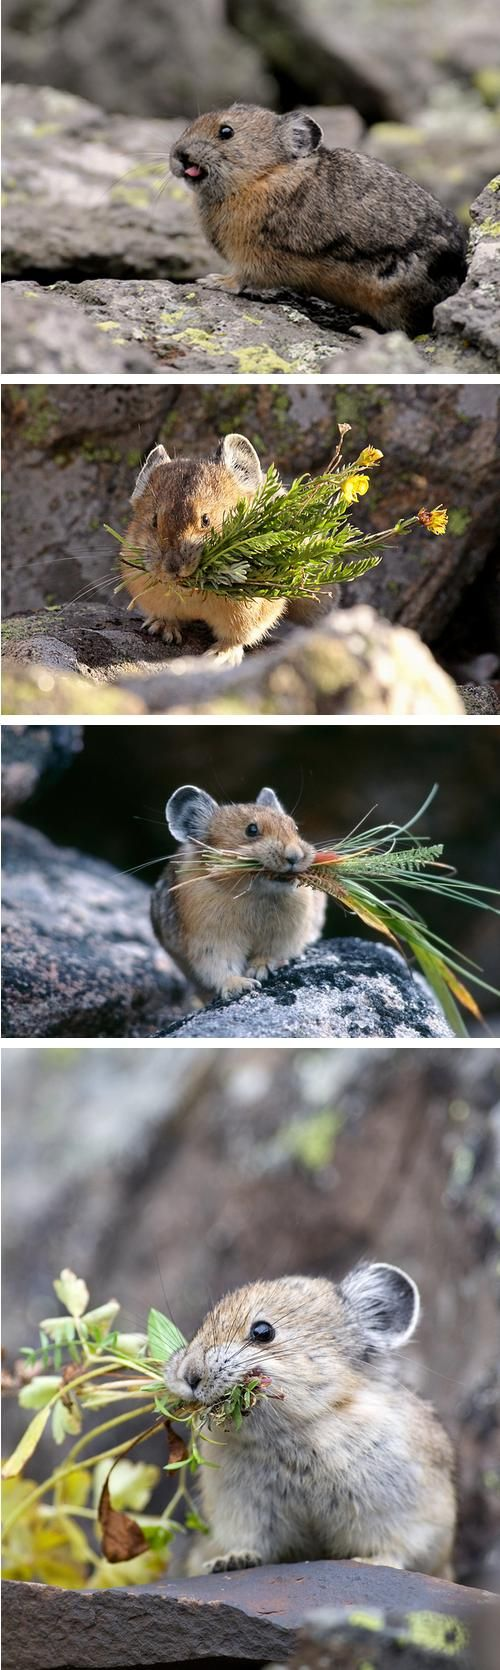 Pikas at work. Not rodents - more related to rabbits. Tiny but very territorial, will sit on a rock and whistle to scare you away. High alpine or on tundra, threatened by global warming.